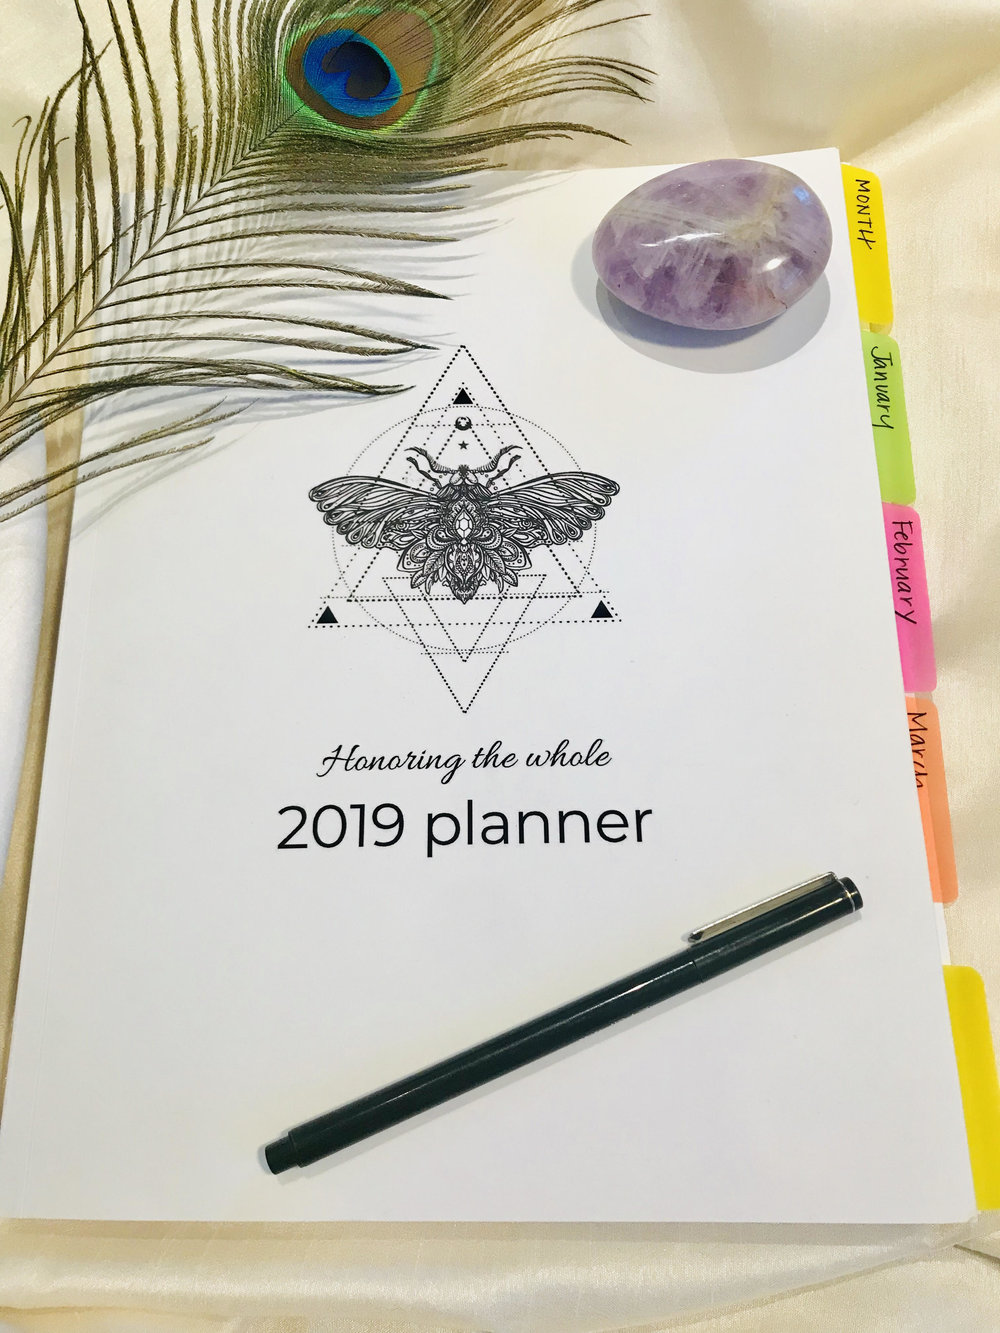 2019 Planner and Calendar by Jaime Fleres